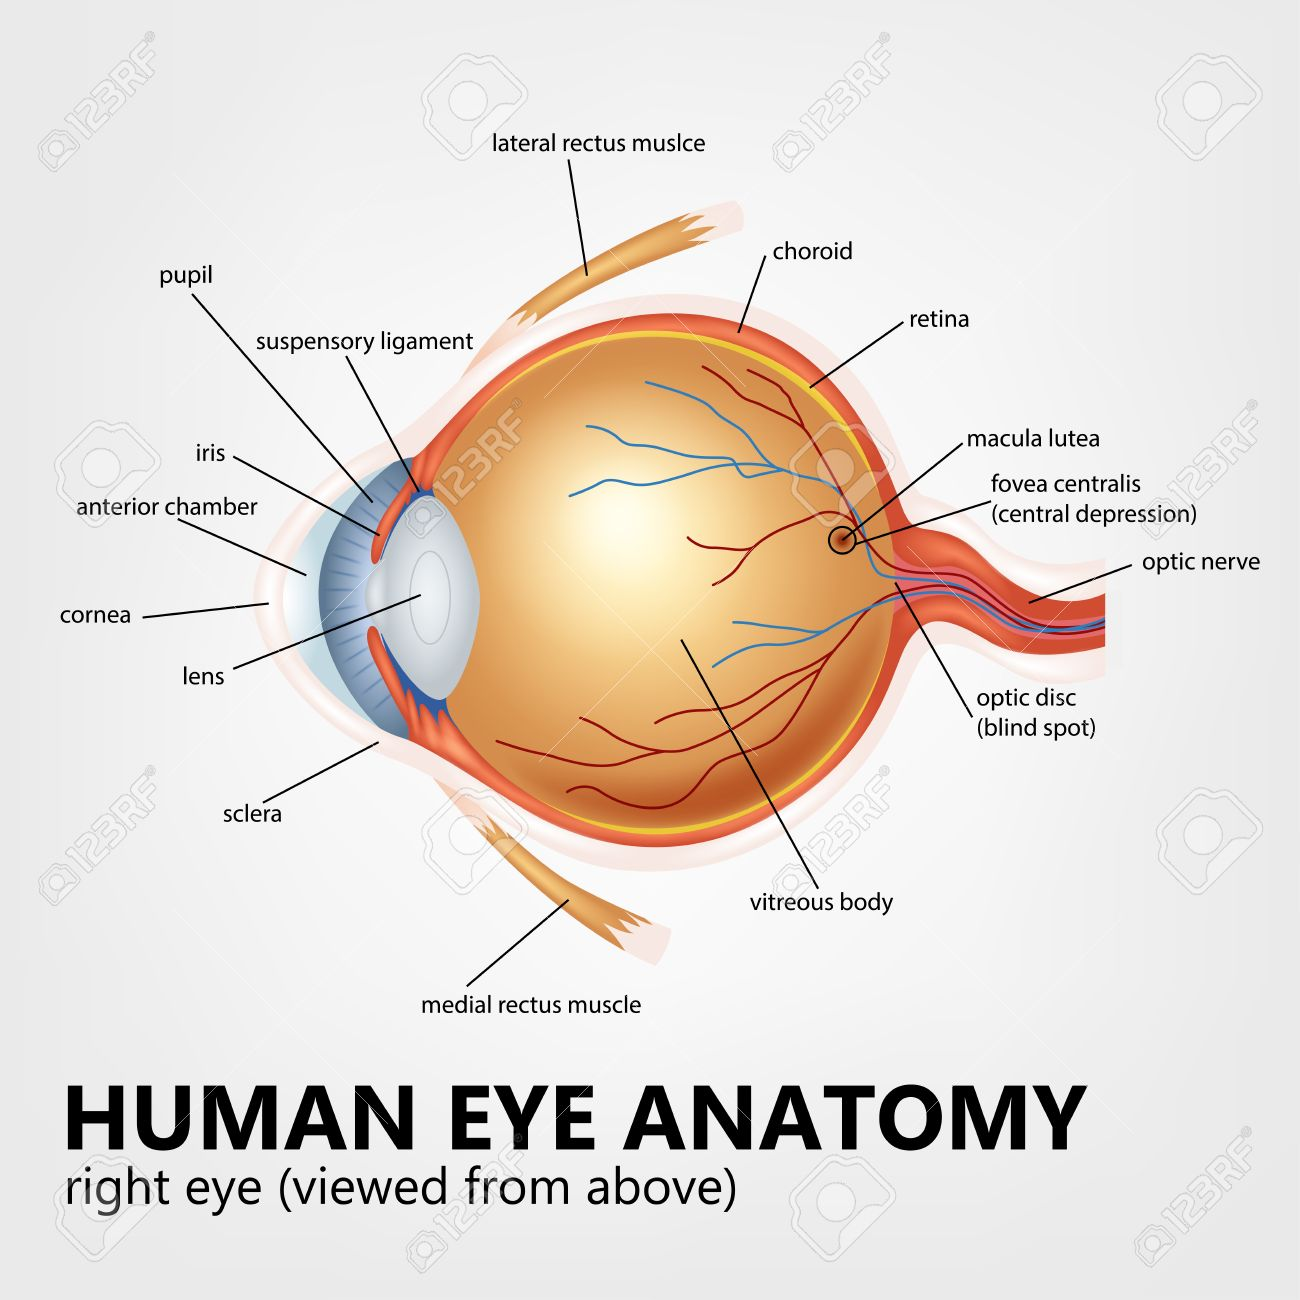 Eye Globe Anatomy Images - human body anatomy